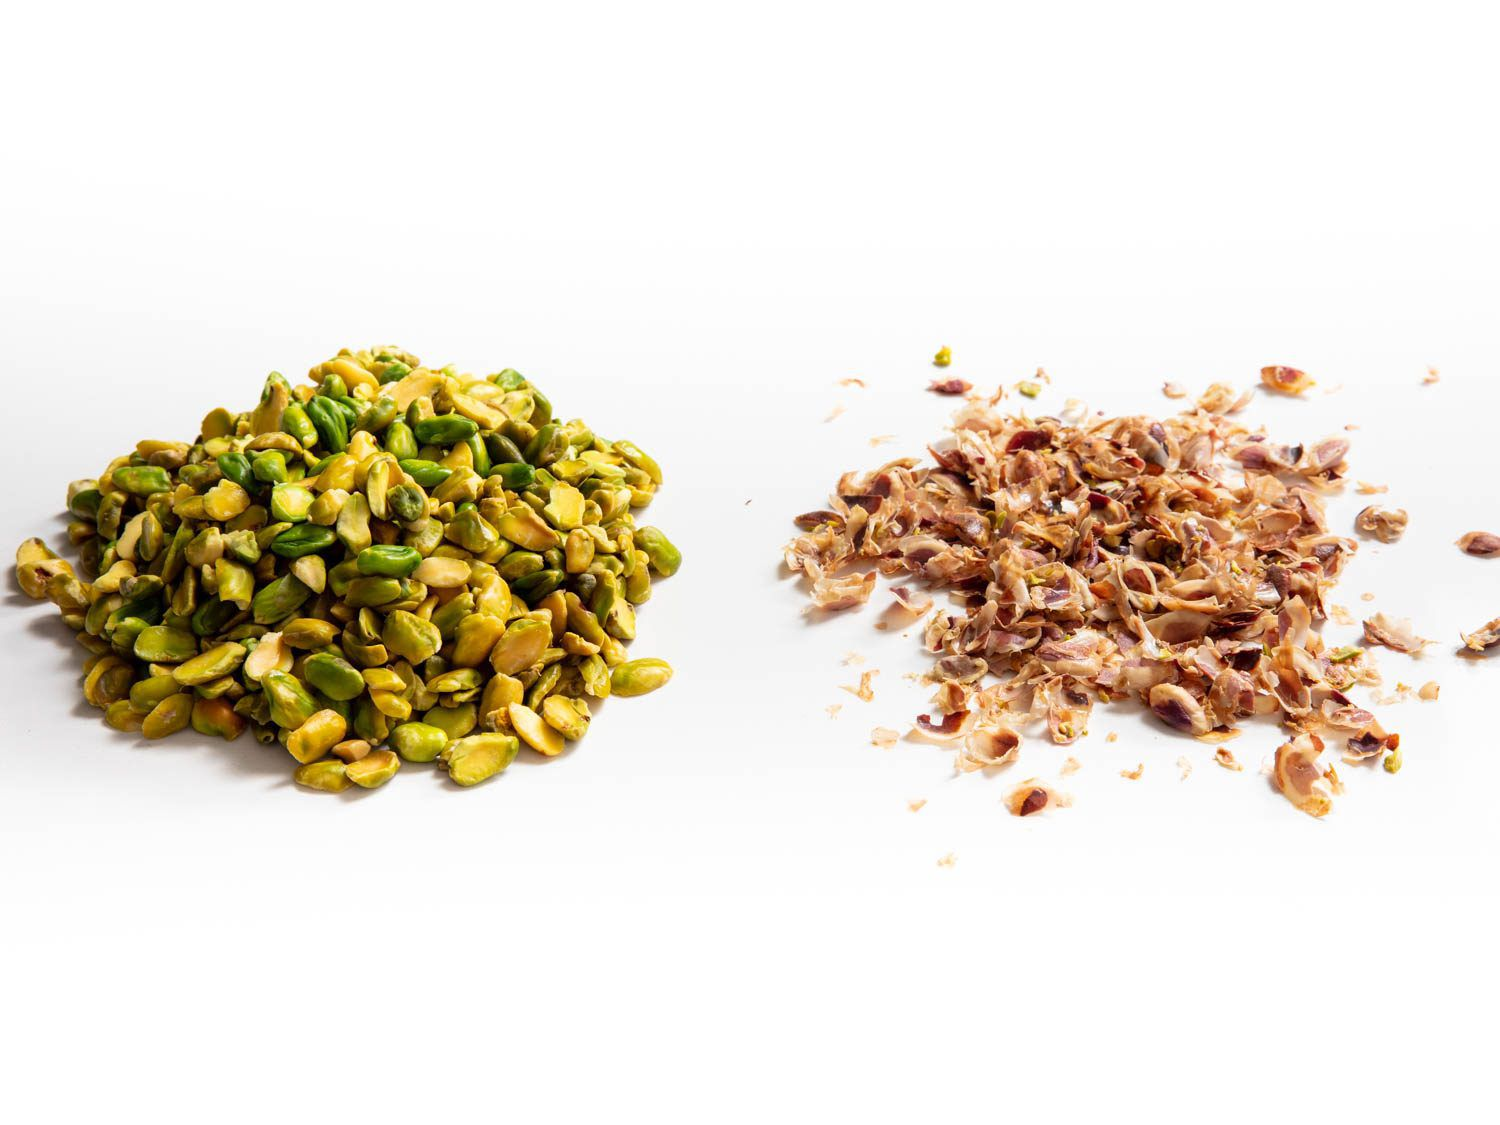 blanched American pistachios and skins